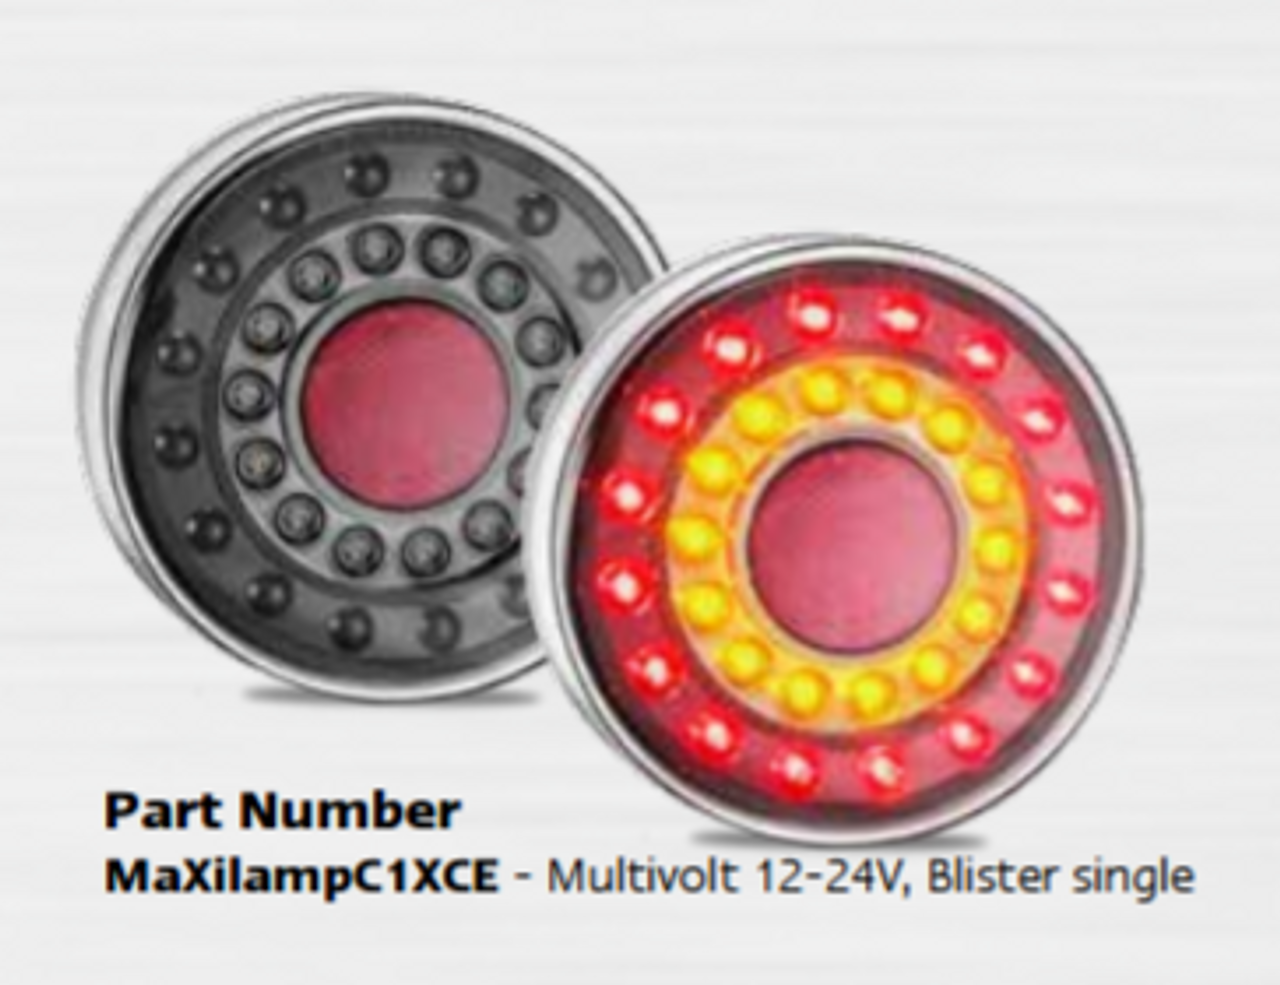 MAXILAMPC1XCE - Modern, Stylish LED Tail Light. Stop, Tail & Indicator with Reflector Light Multi-Volt 12 & 24 Volt Clear Lens Round Reflector. Single Pack. LED Auto Lamps. Ultimate LED.